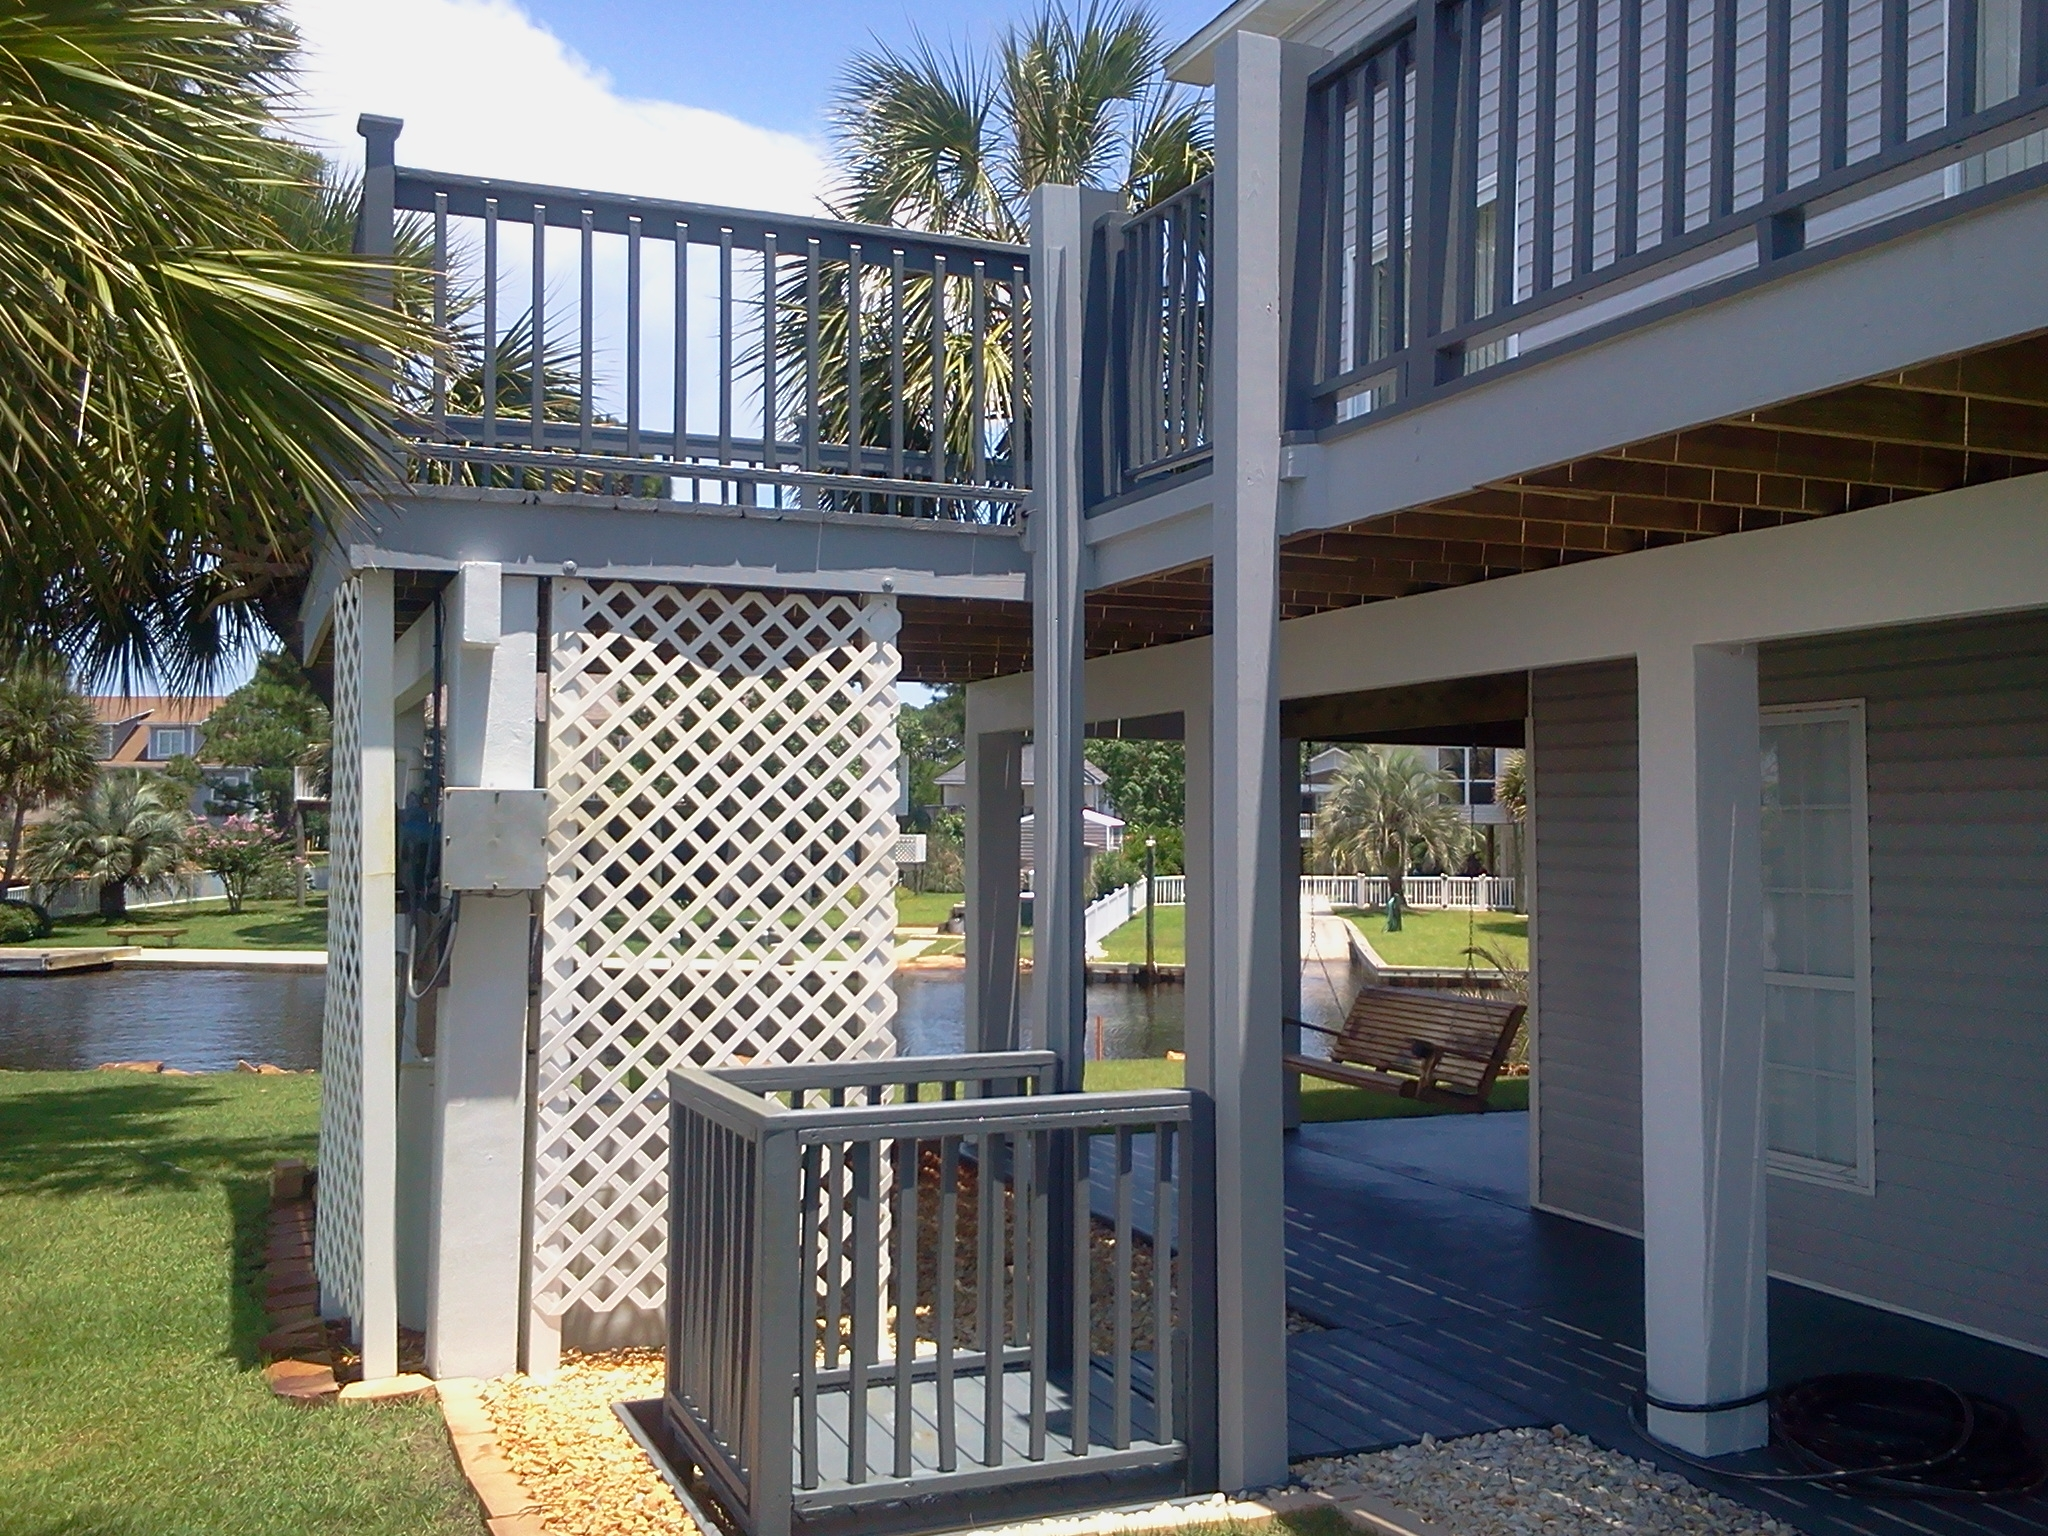 Aquarius elevators and lifts llc in pensacola 954 west for 2 story wheelchair lift